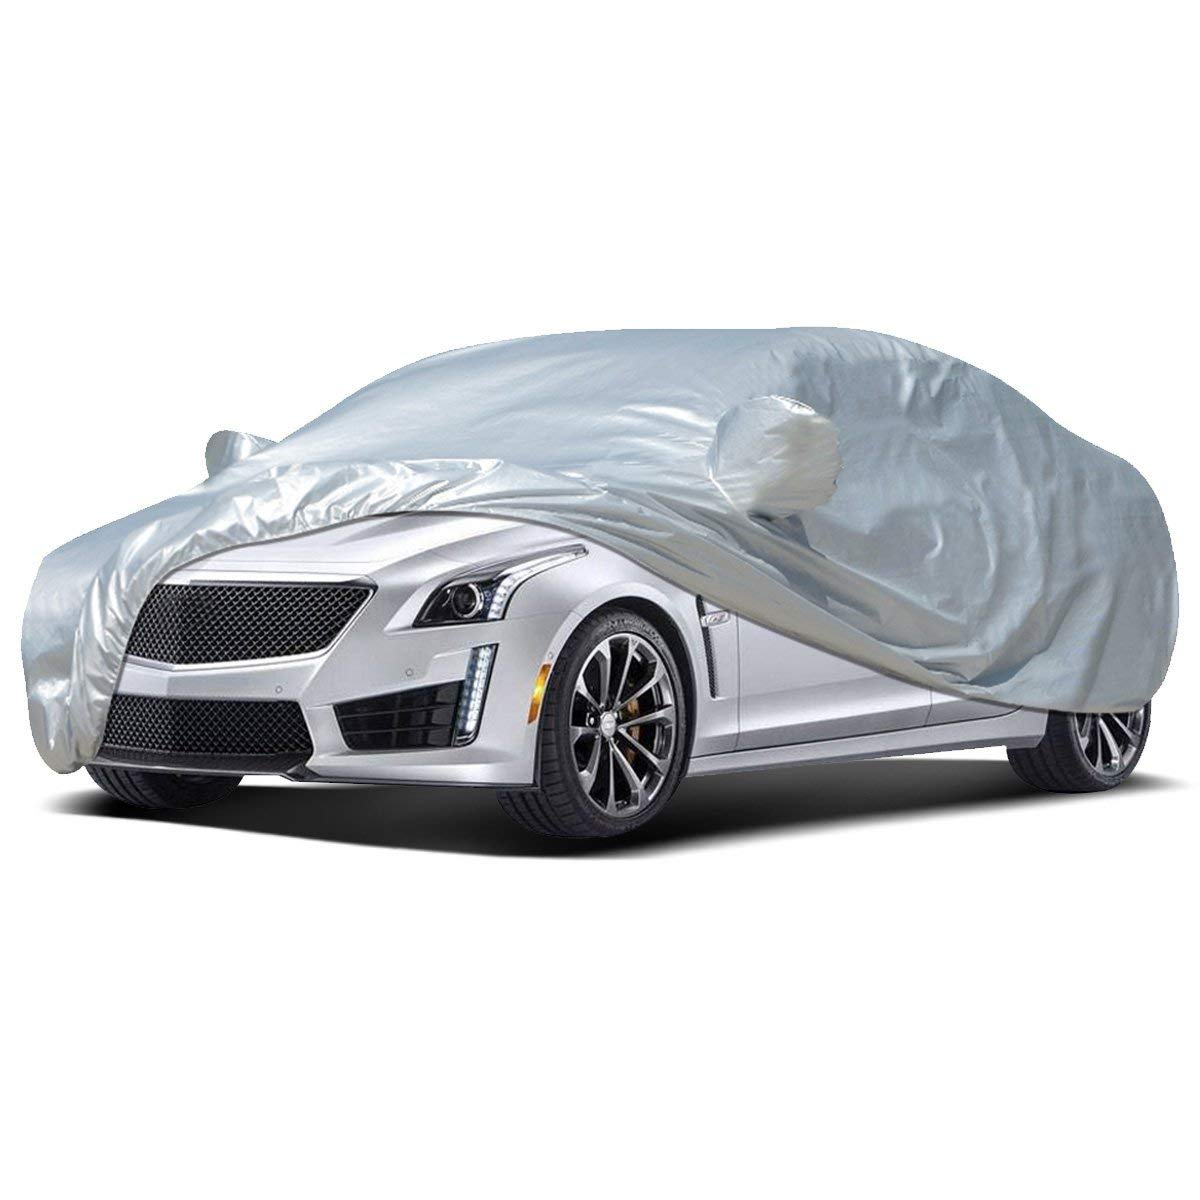 AUDEW Car Cover SUV Cover Car Snow Cover Waterproof/Windproof/Dustproof/Scratch Resistant Outdoor UV Protection Full Car Covers for SUV Car